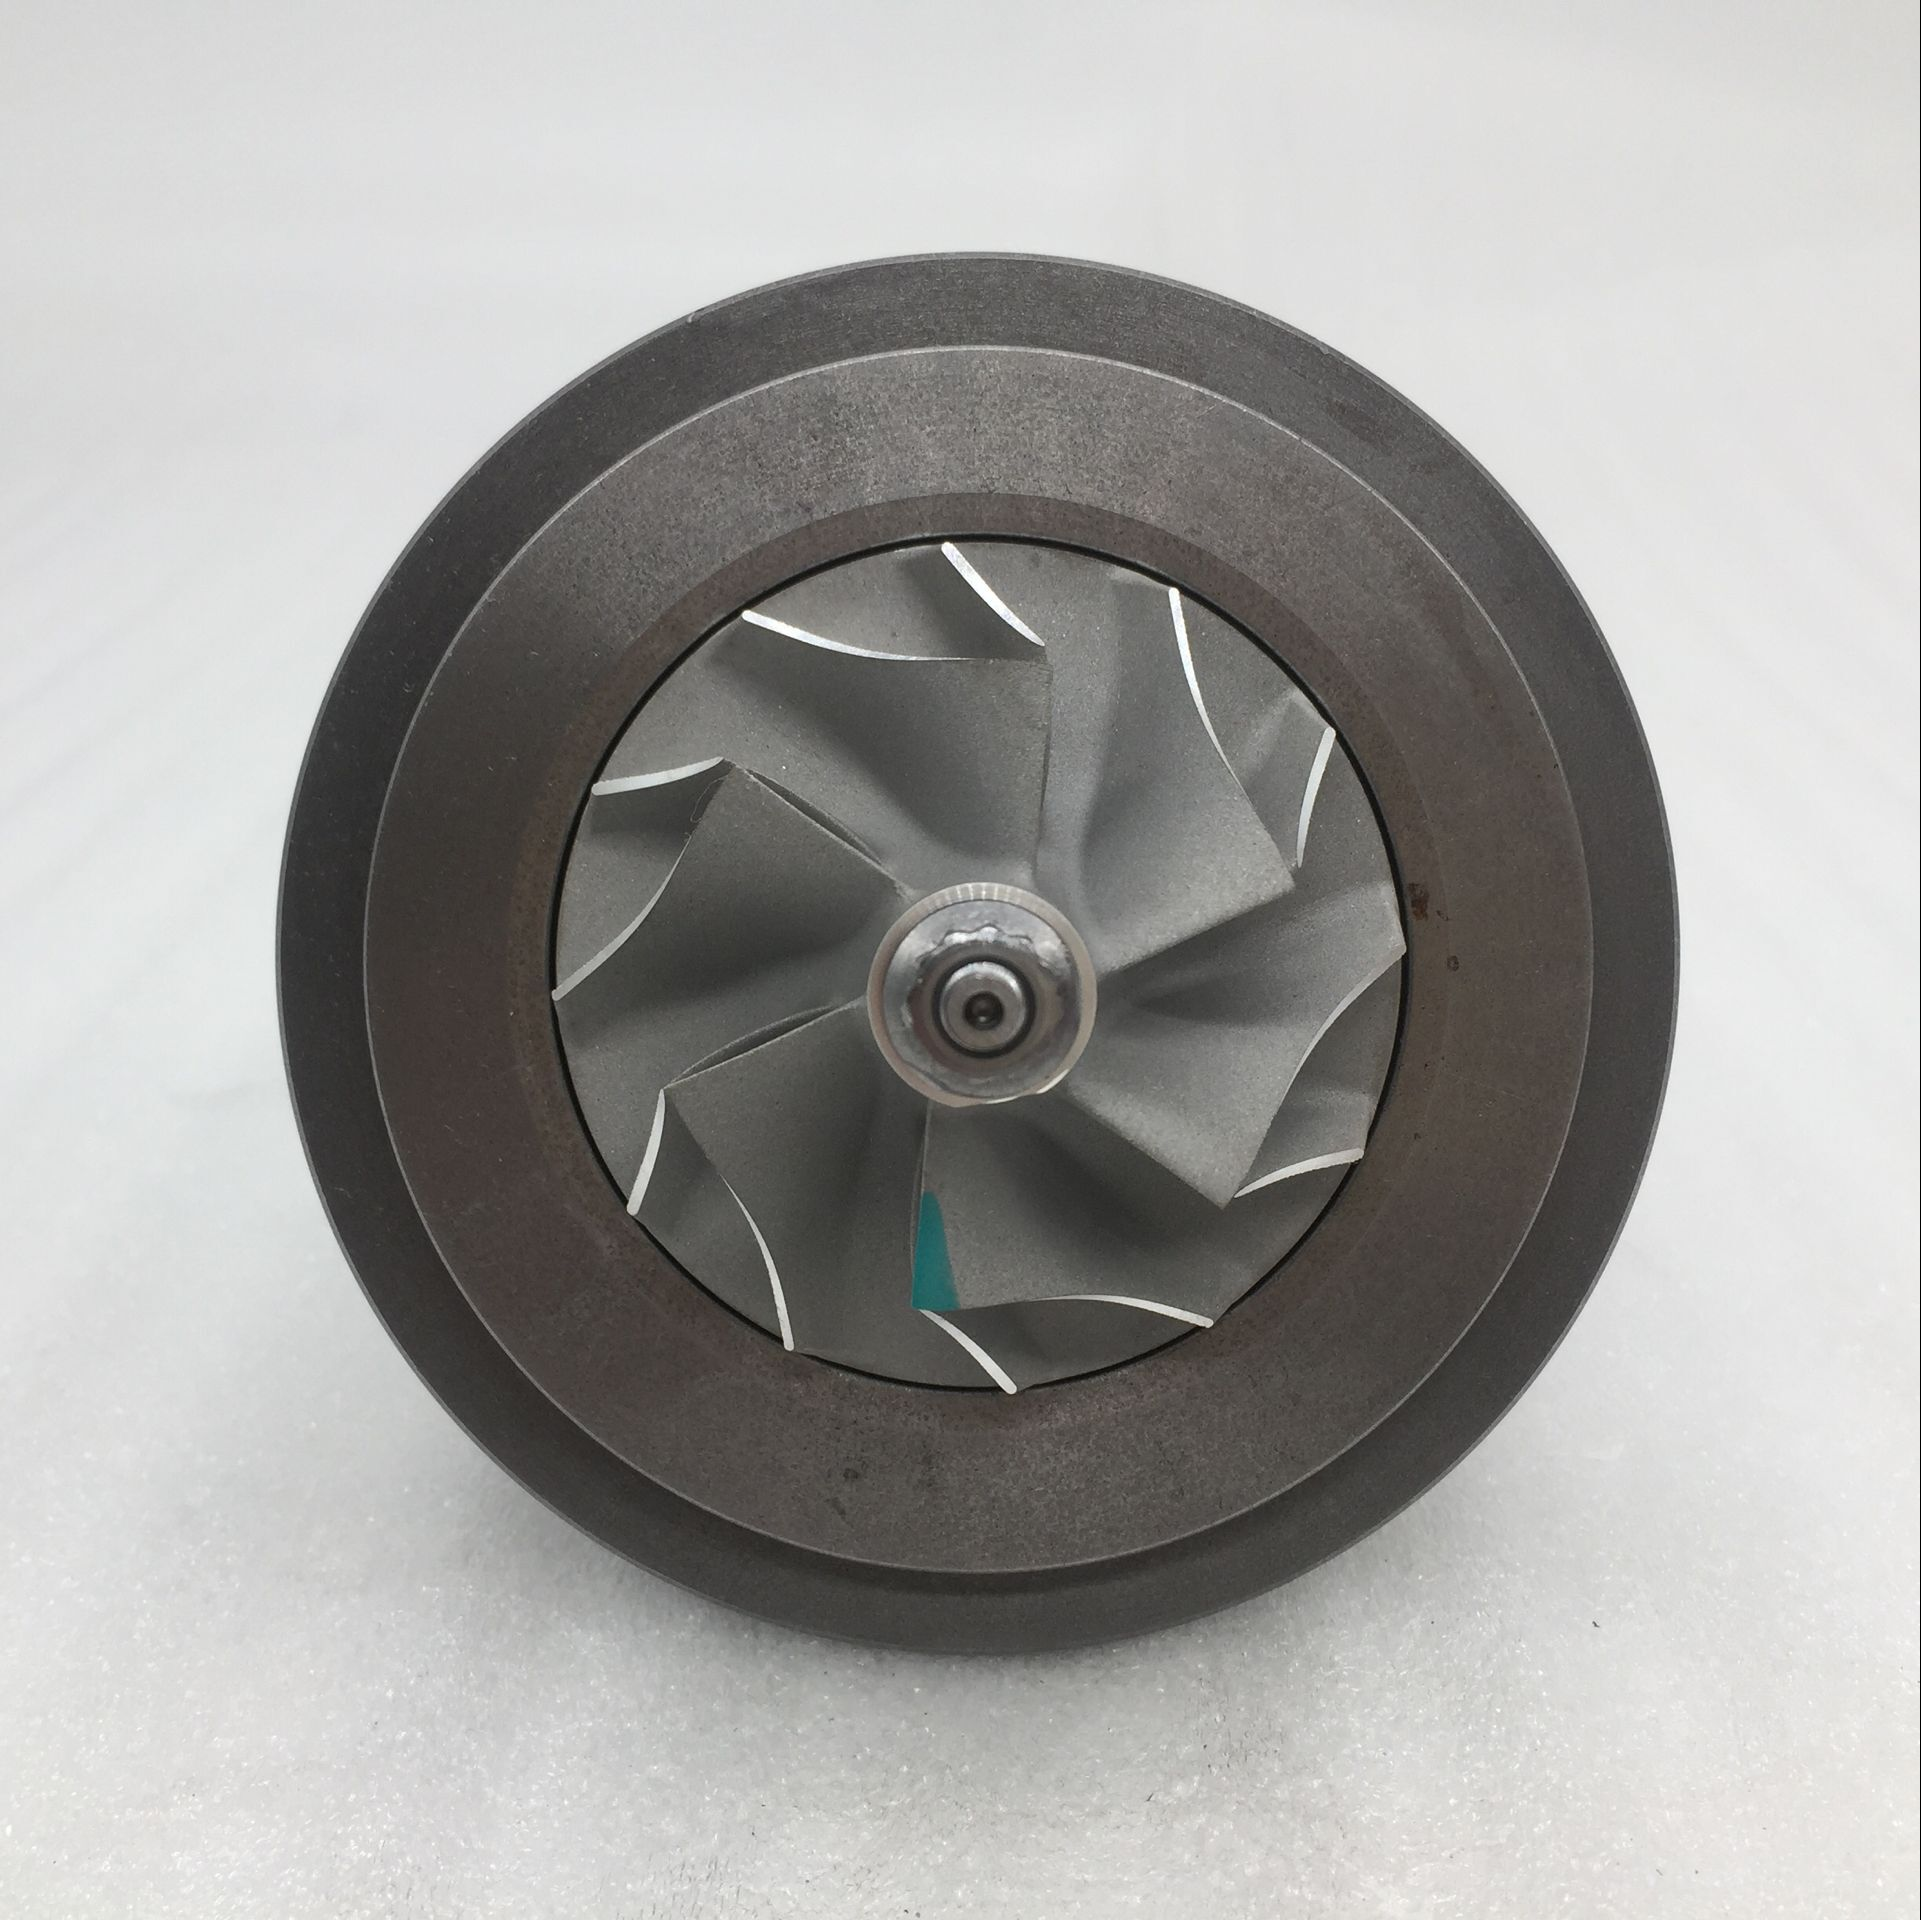 Oct discount HE200 turbocharger P/N:3777896/3777897 turbo core